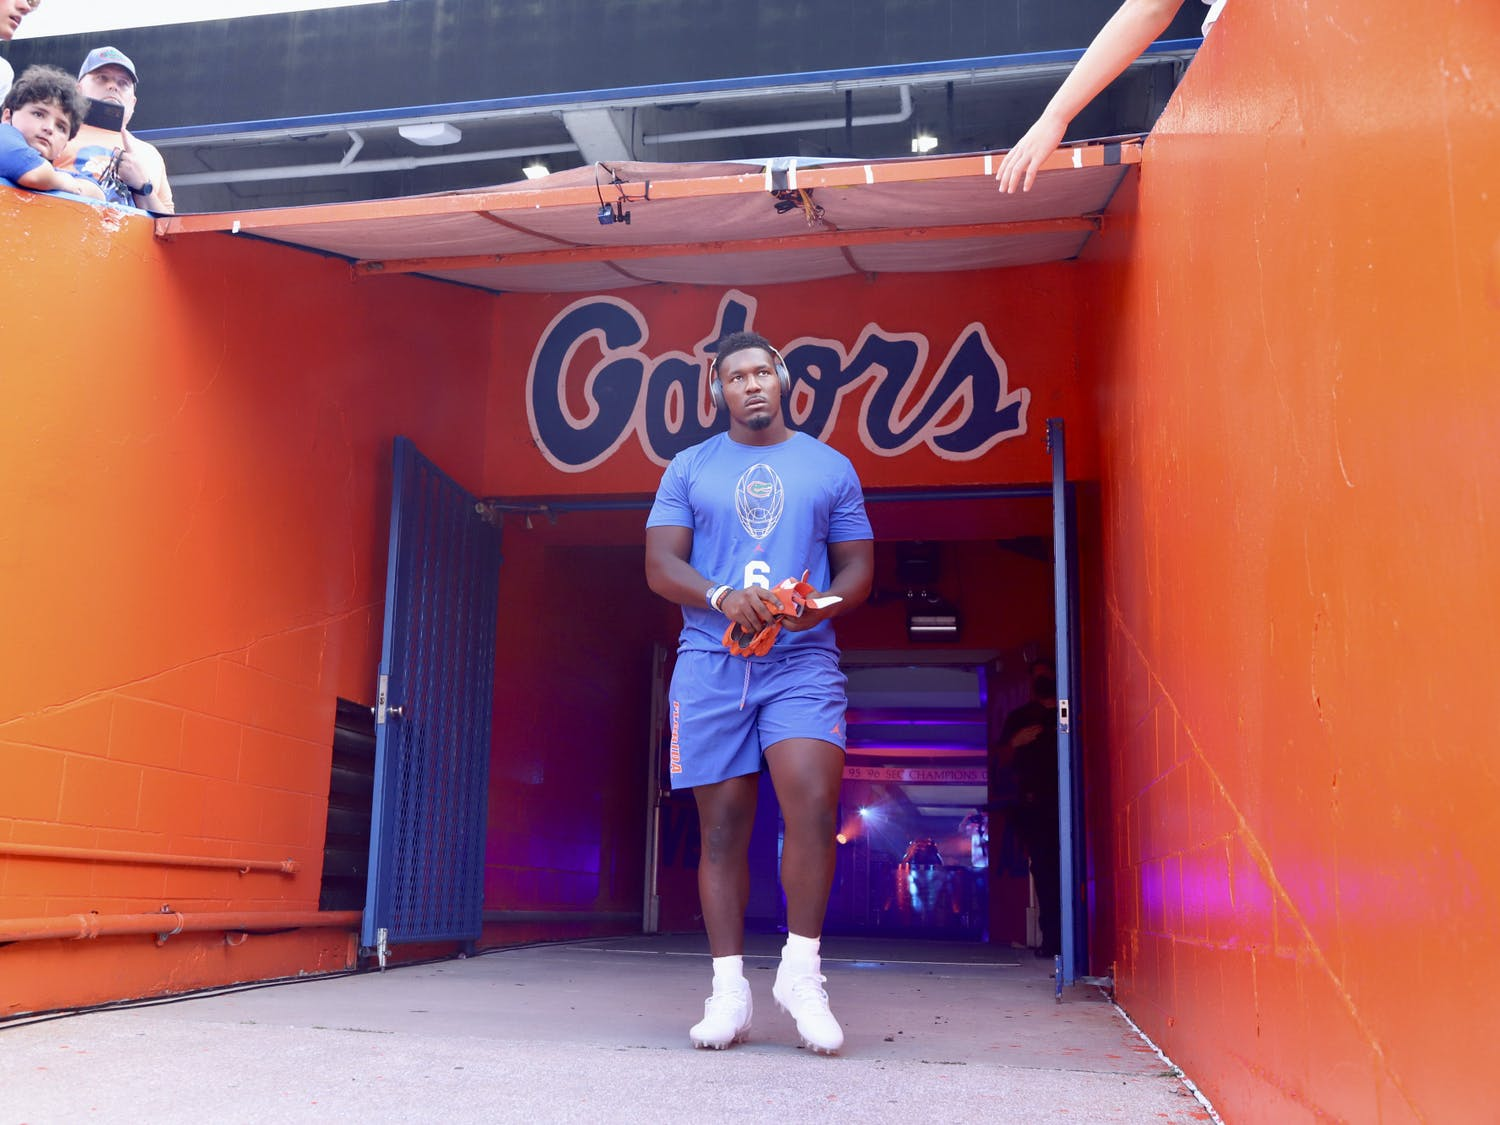 Florida defensive end Zachary Carter walks on to the field at Ben Hill Griffin Stadium for warmups ahead of the Gators' season opener against Florida Atlantic on Sept. 4.